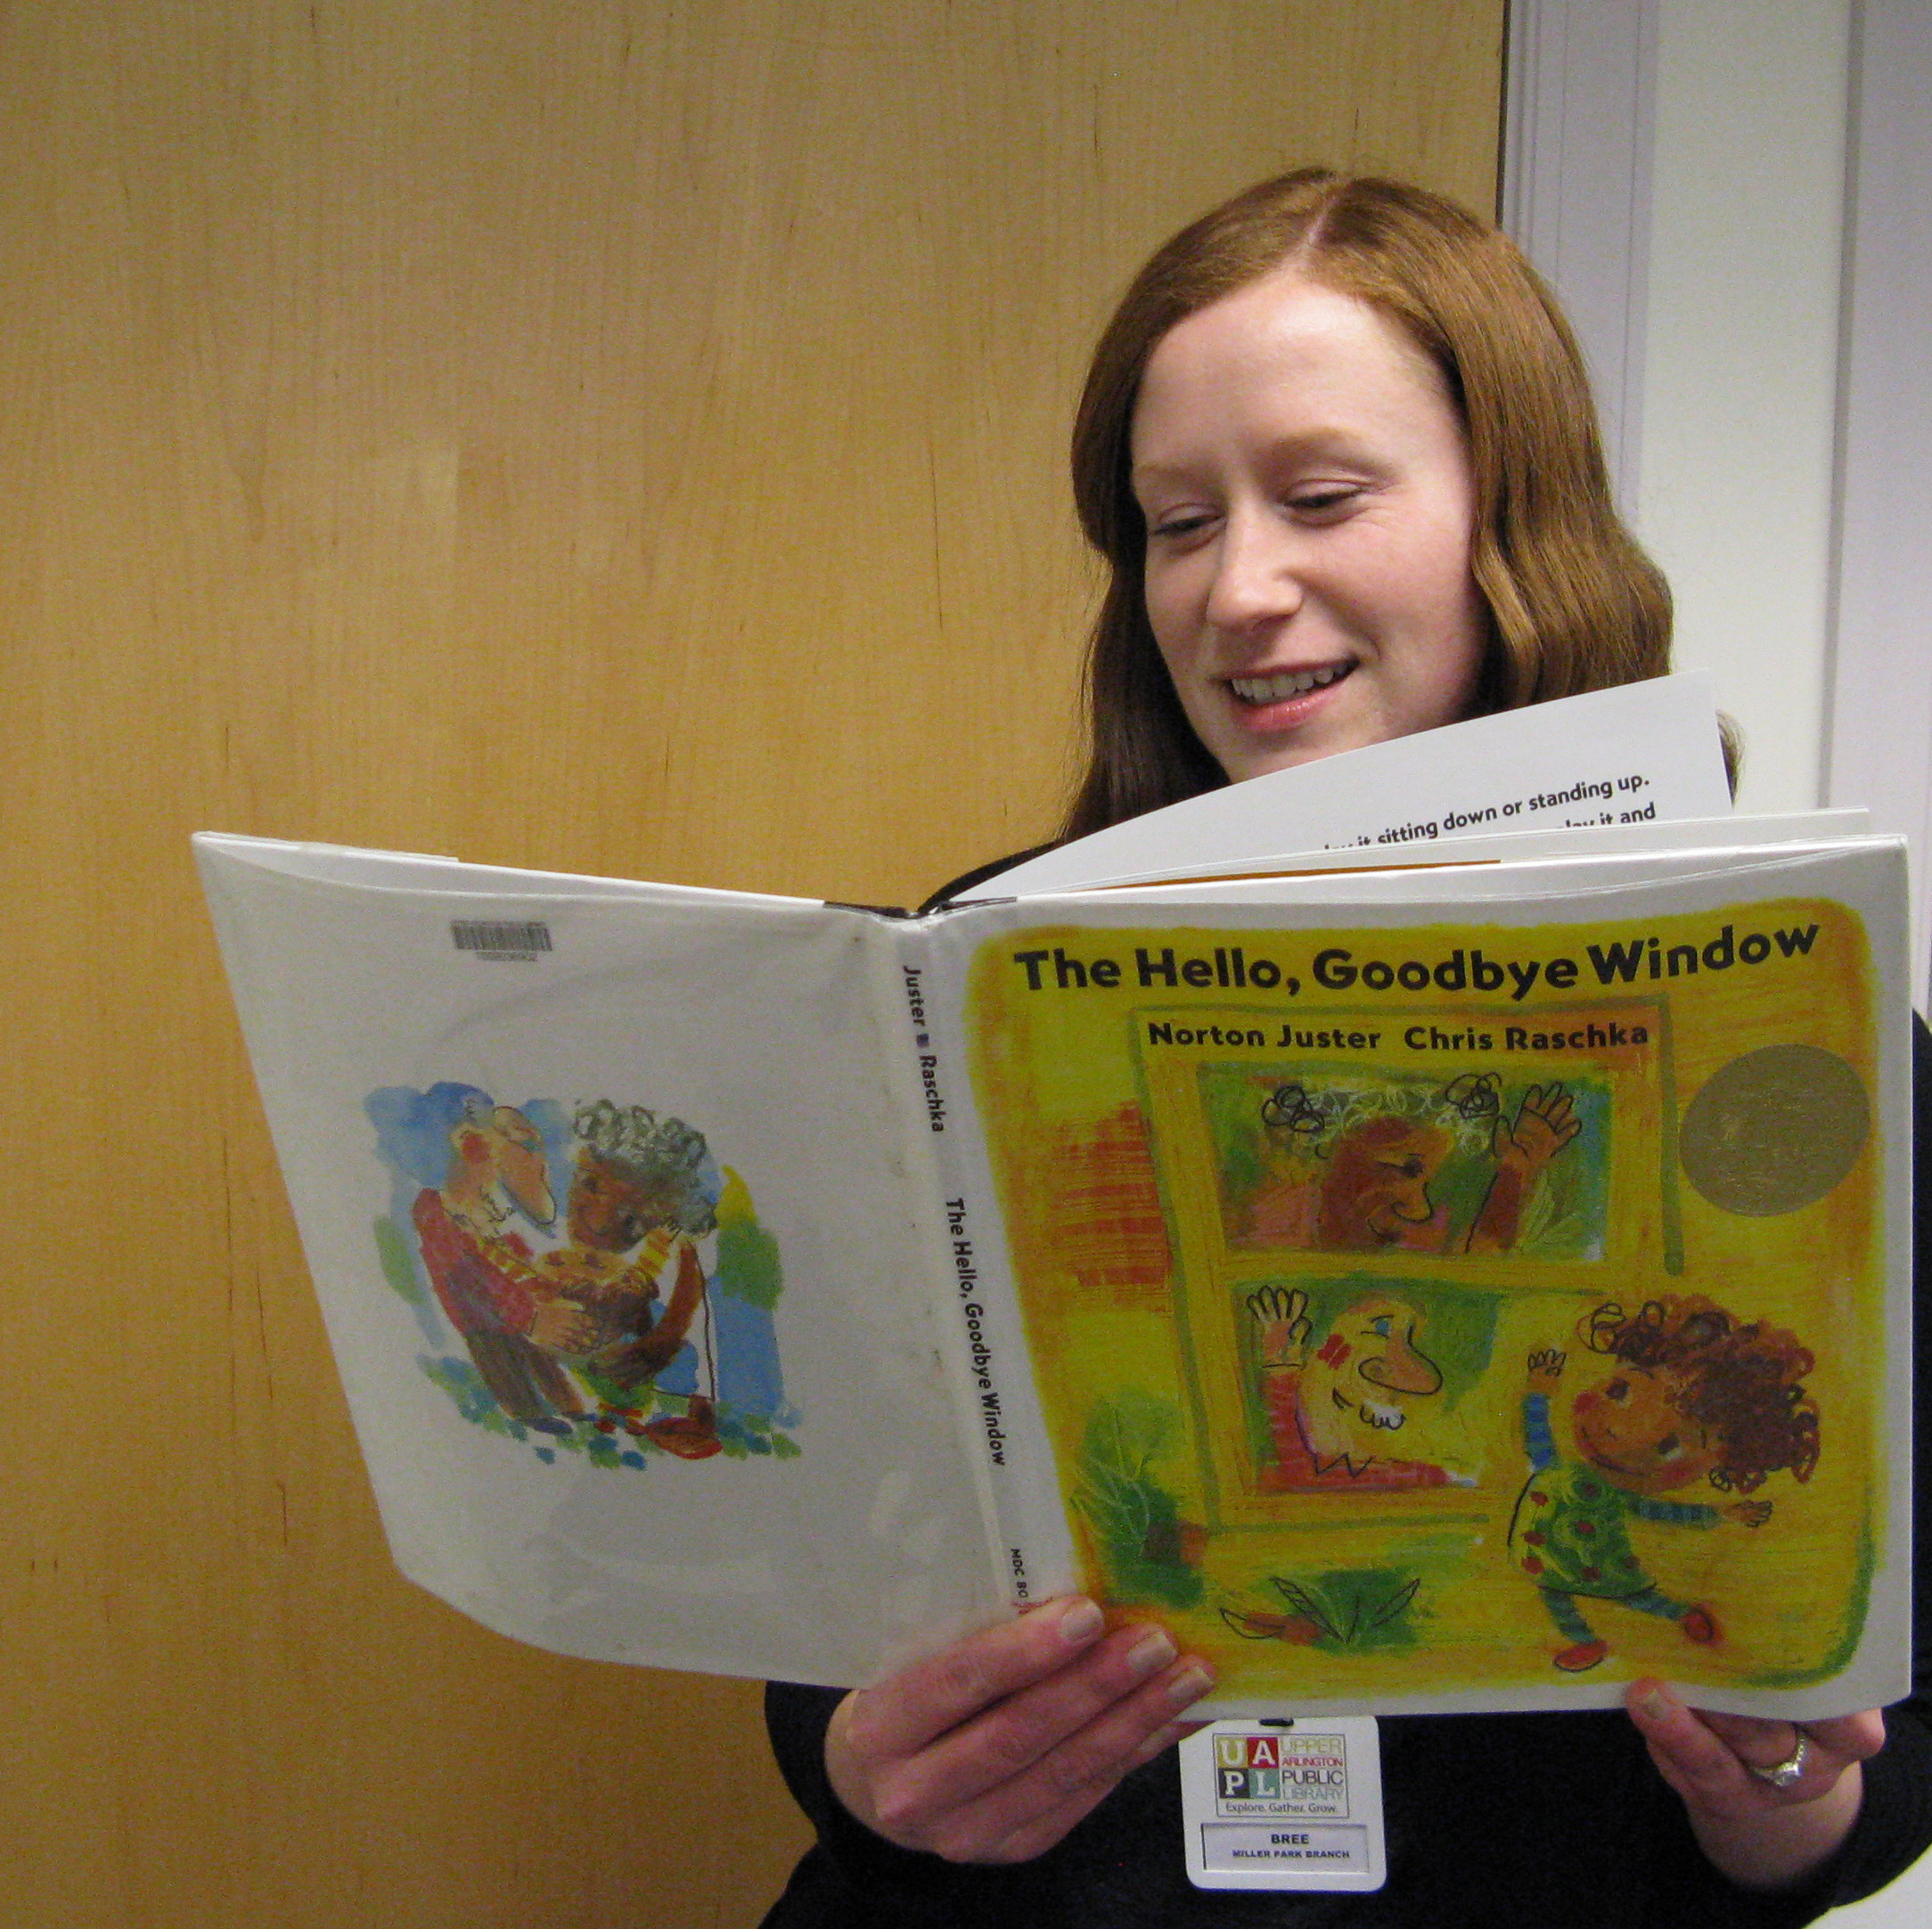 Photo of Bree reading the book The Hello, Goodbye Window